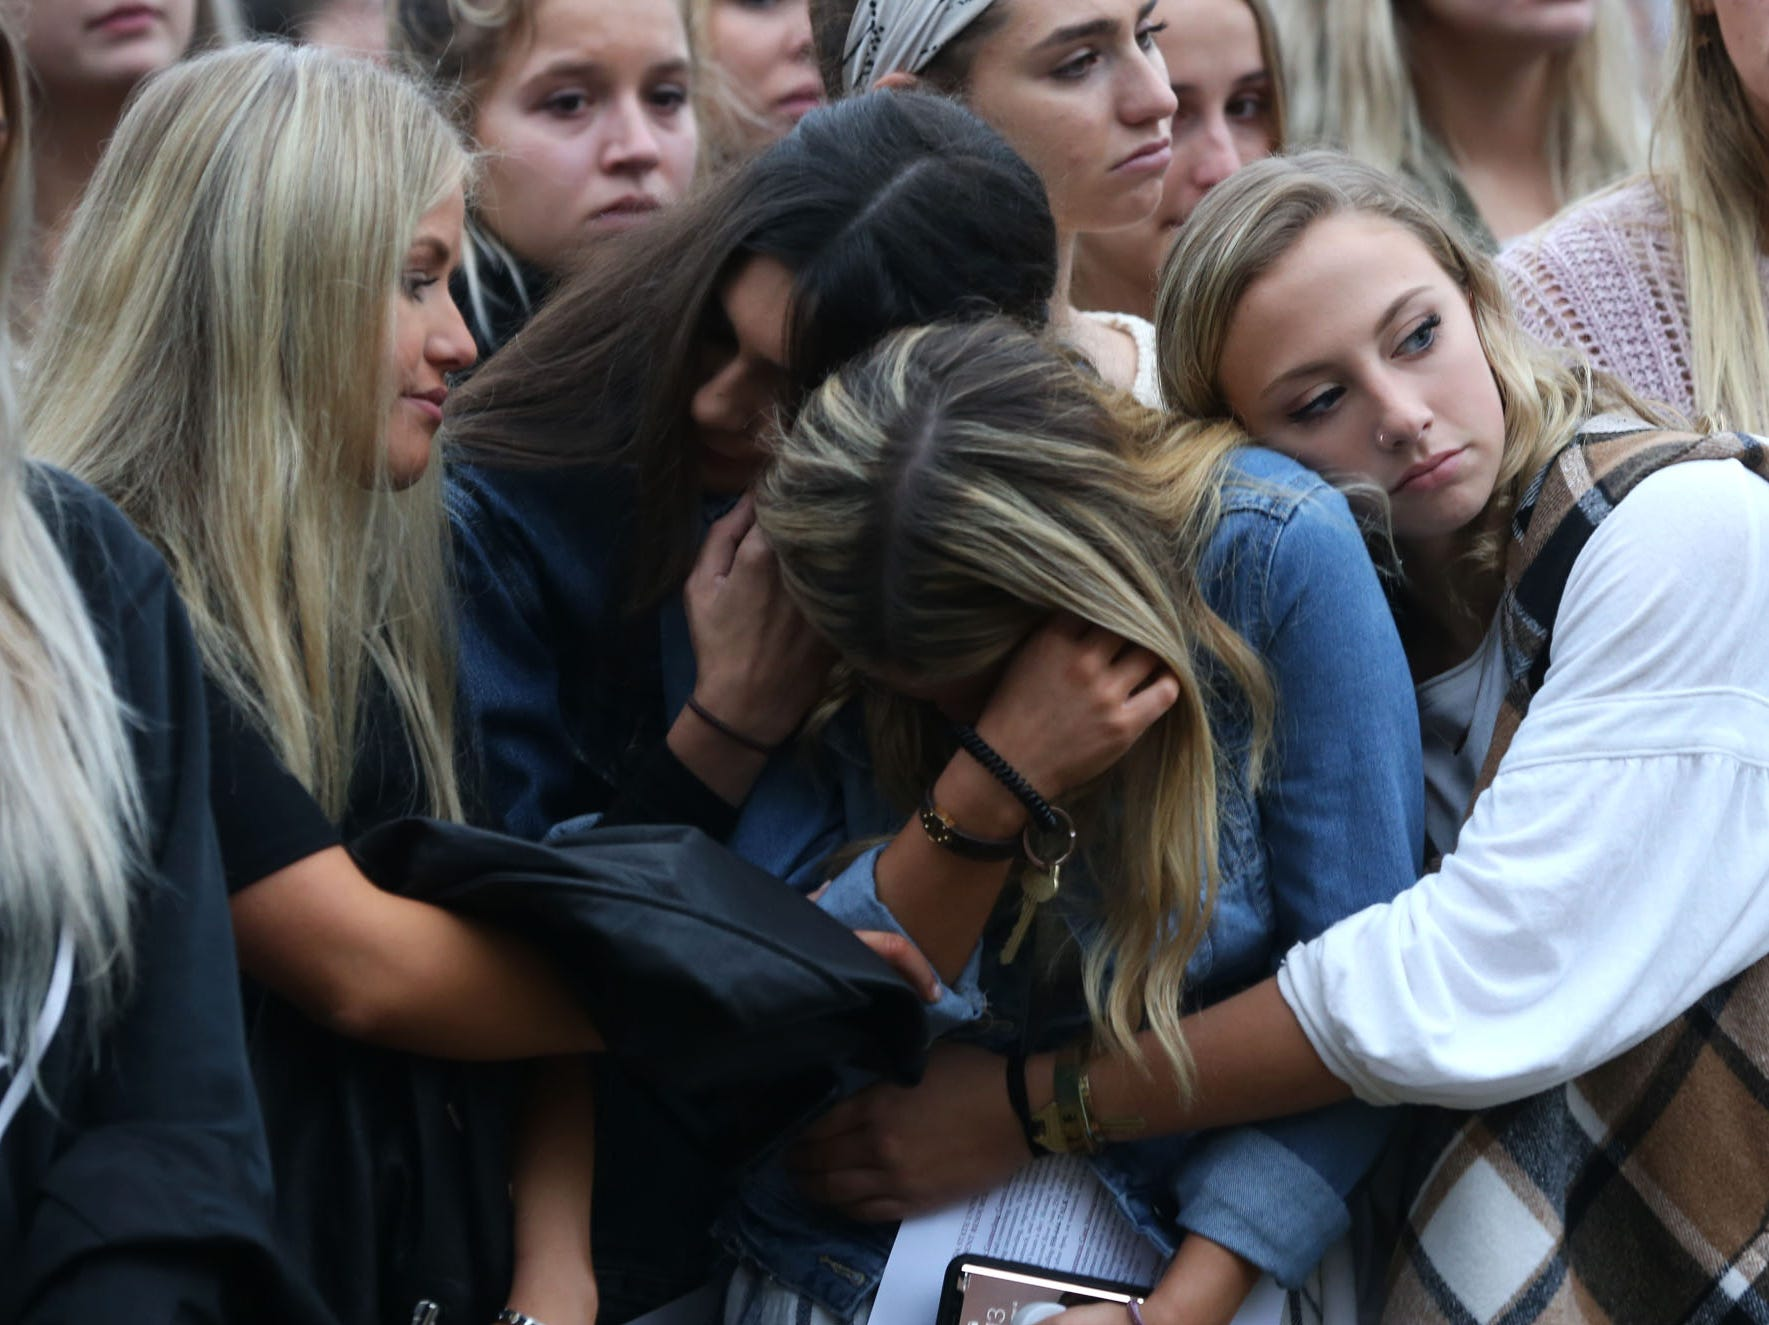 Hundreds of people attended a vigil held at Florida State University in honor of the two lives that were lost, Maura Binkley and Nancy Van Vessem, during the shooting at Hot Yoga Tallahassee, on Nov. 4, 2018. Friends, extended family, and sorority sisters of the victims gathered to pay their respects.